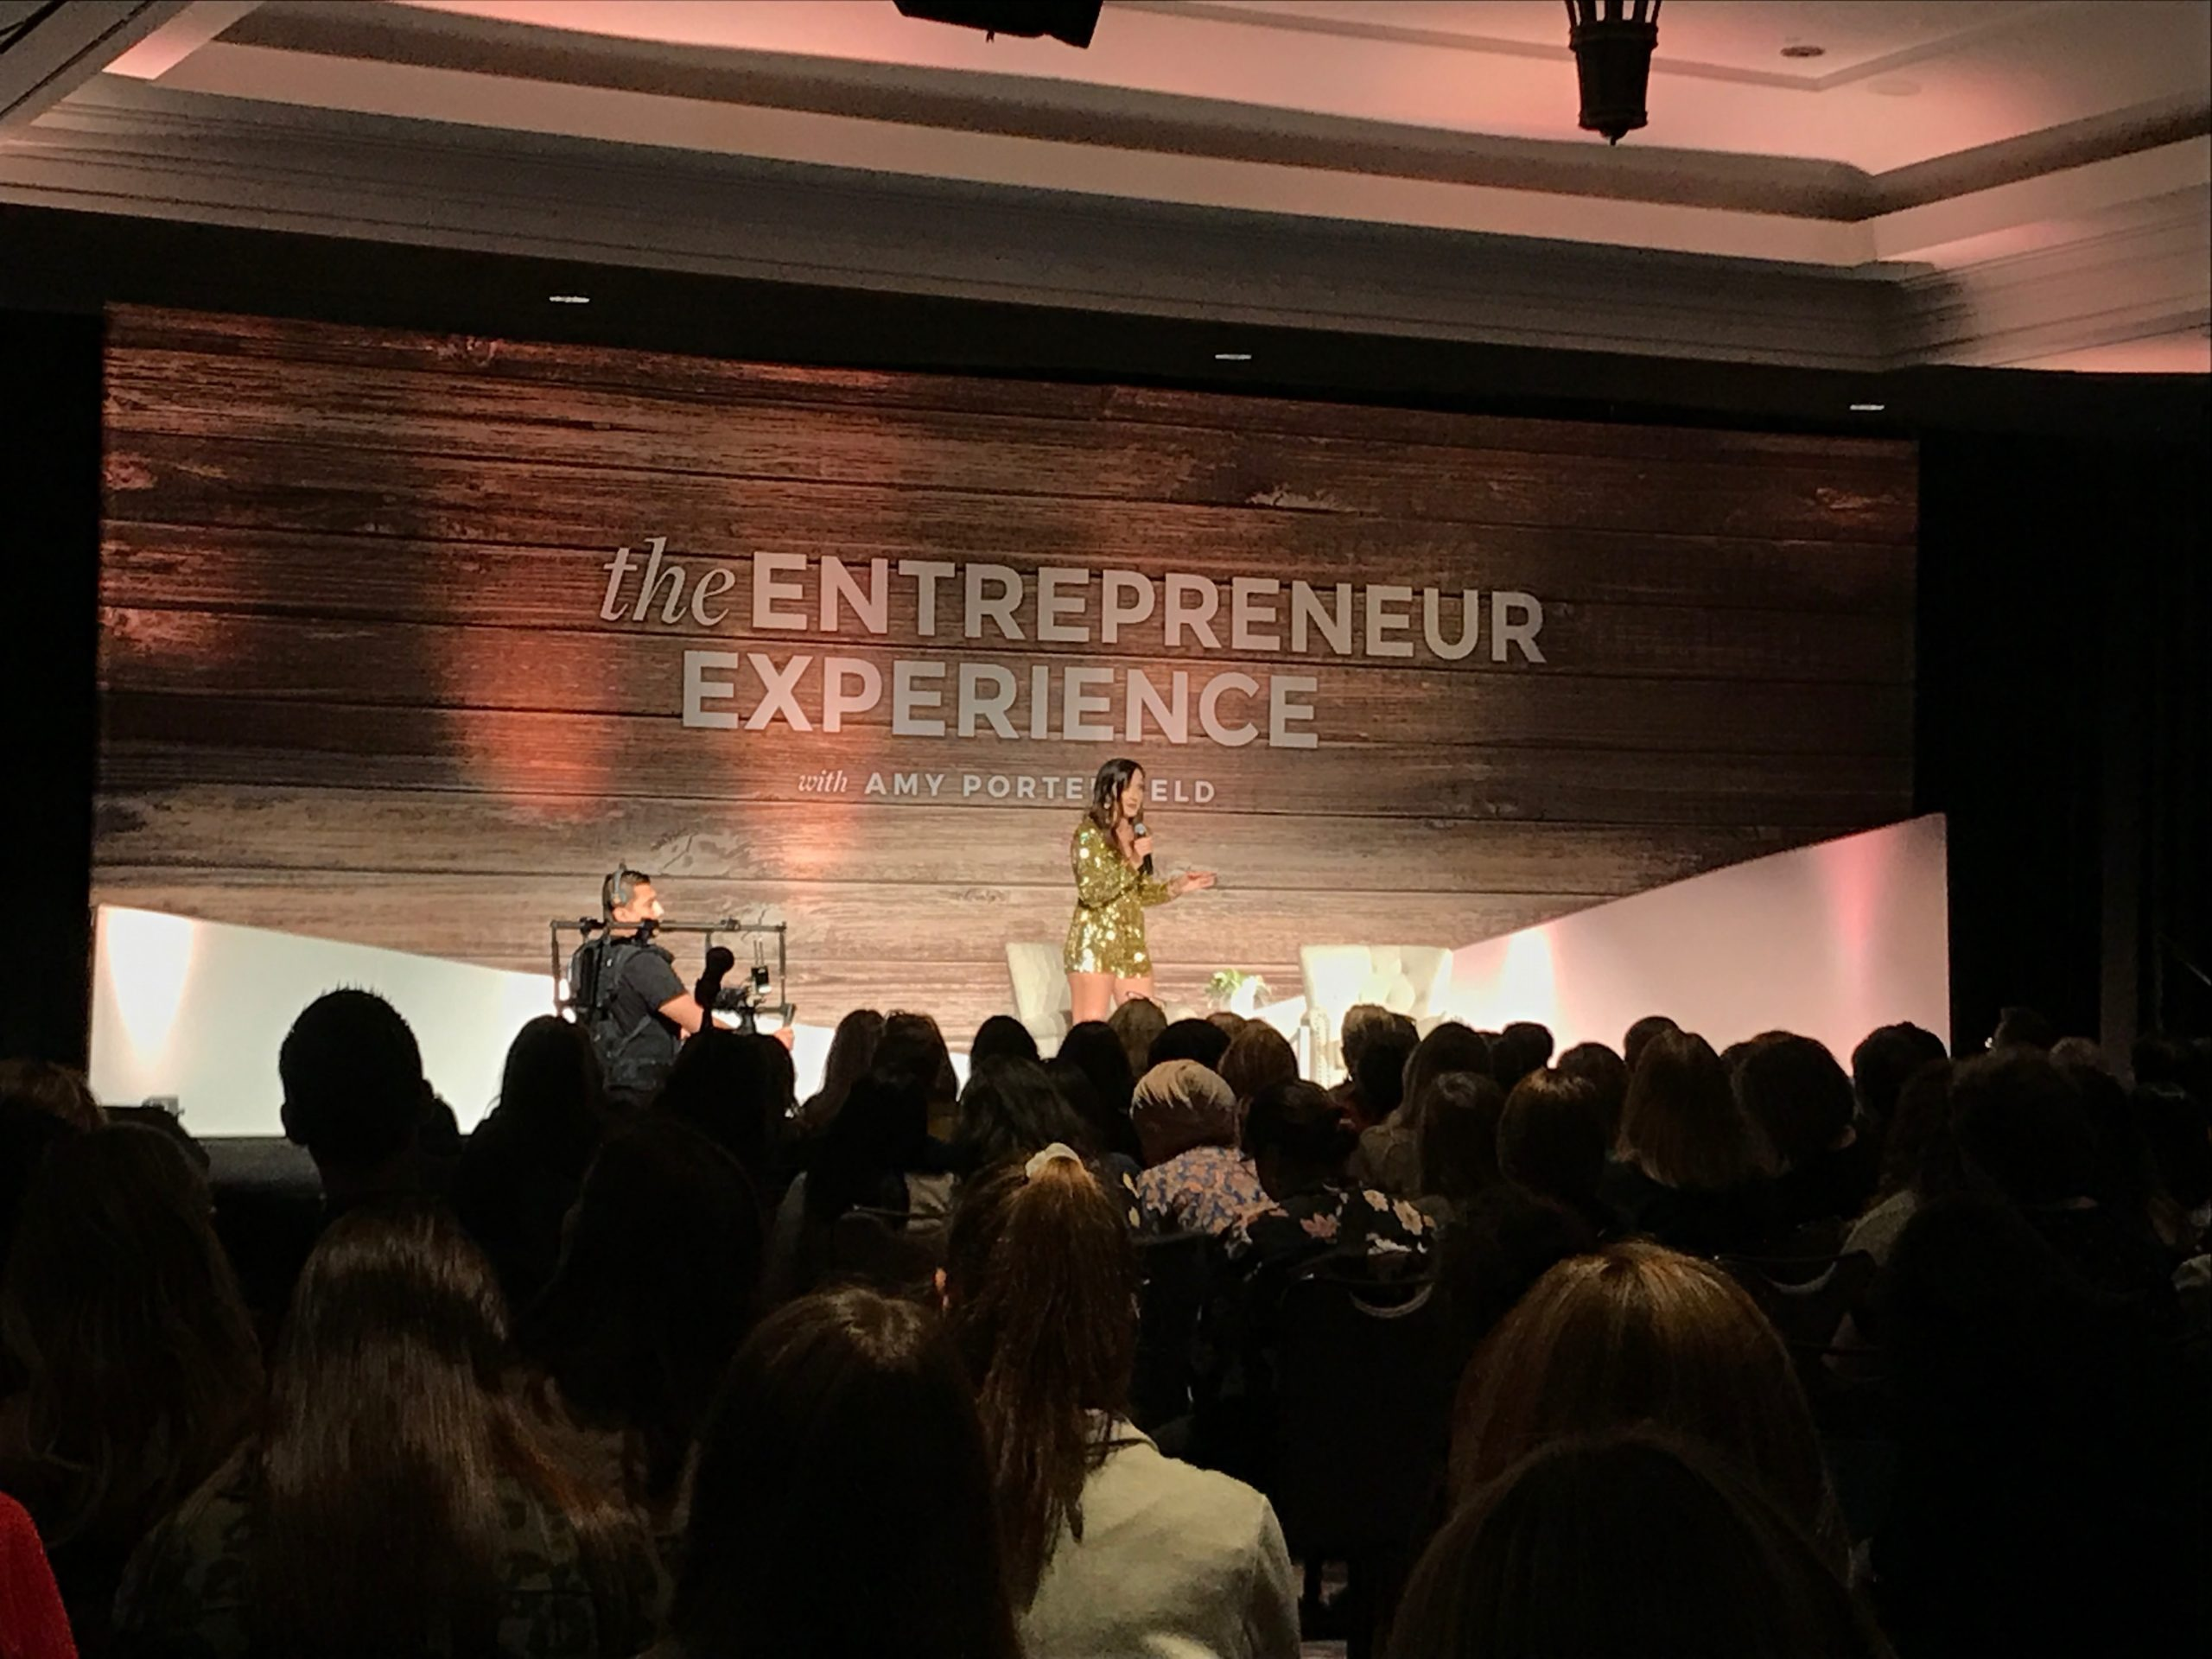 Tarzan Kay at the Amy Porterfield Entrepreneur Experience